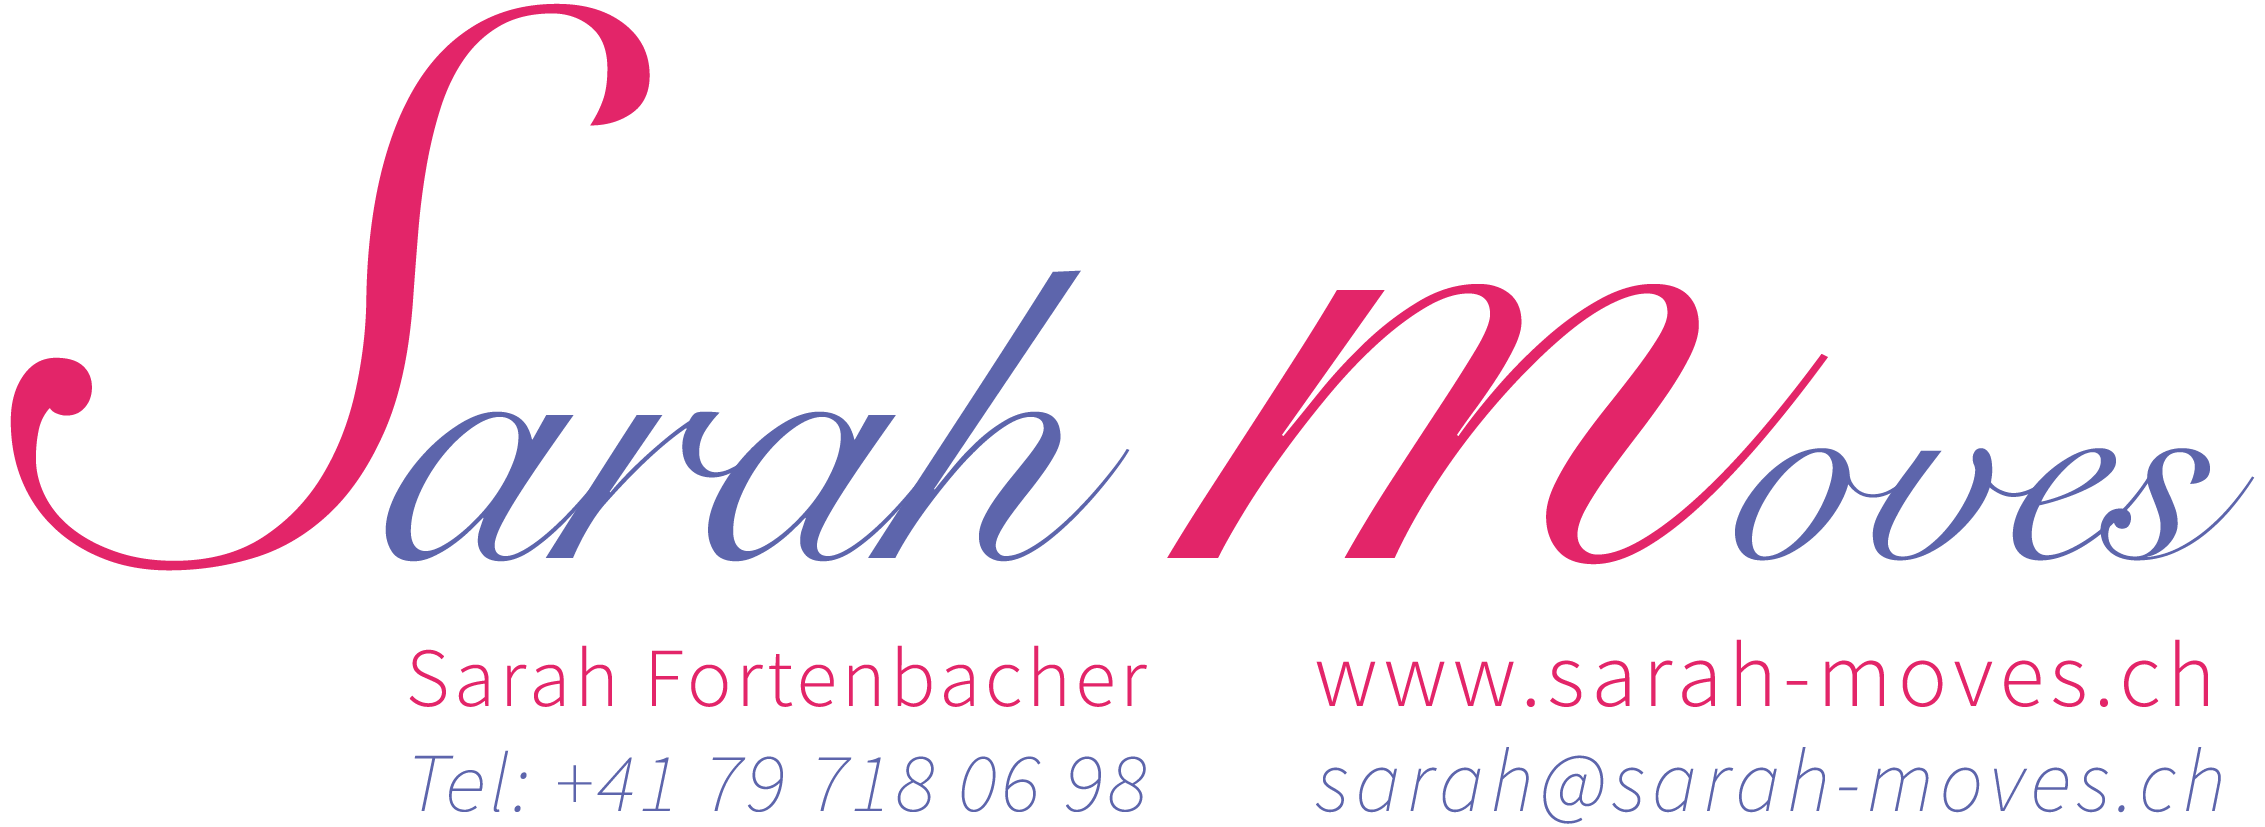 Sarah-Moves-Logo-Web